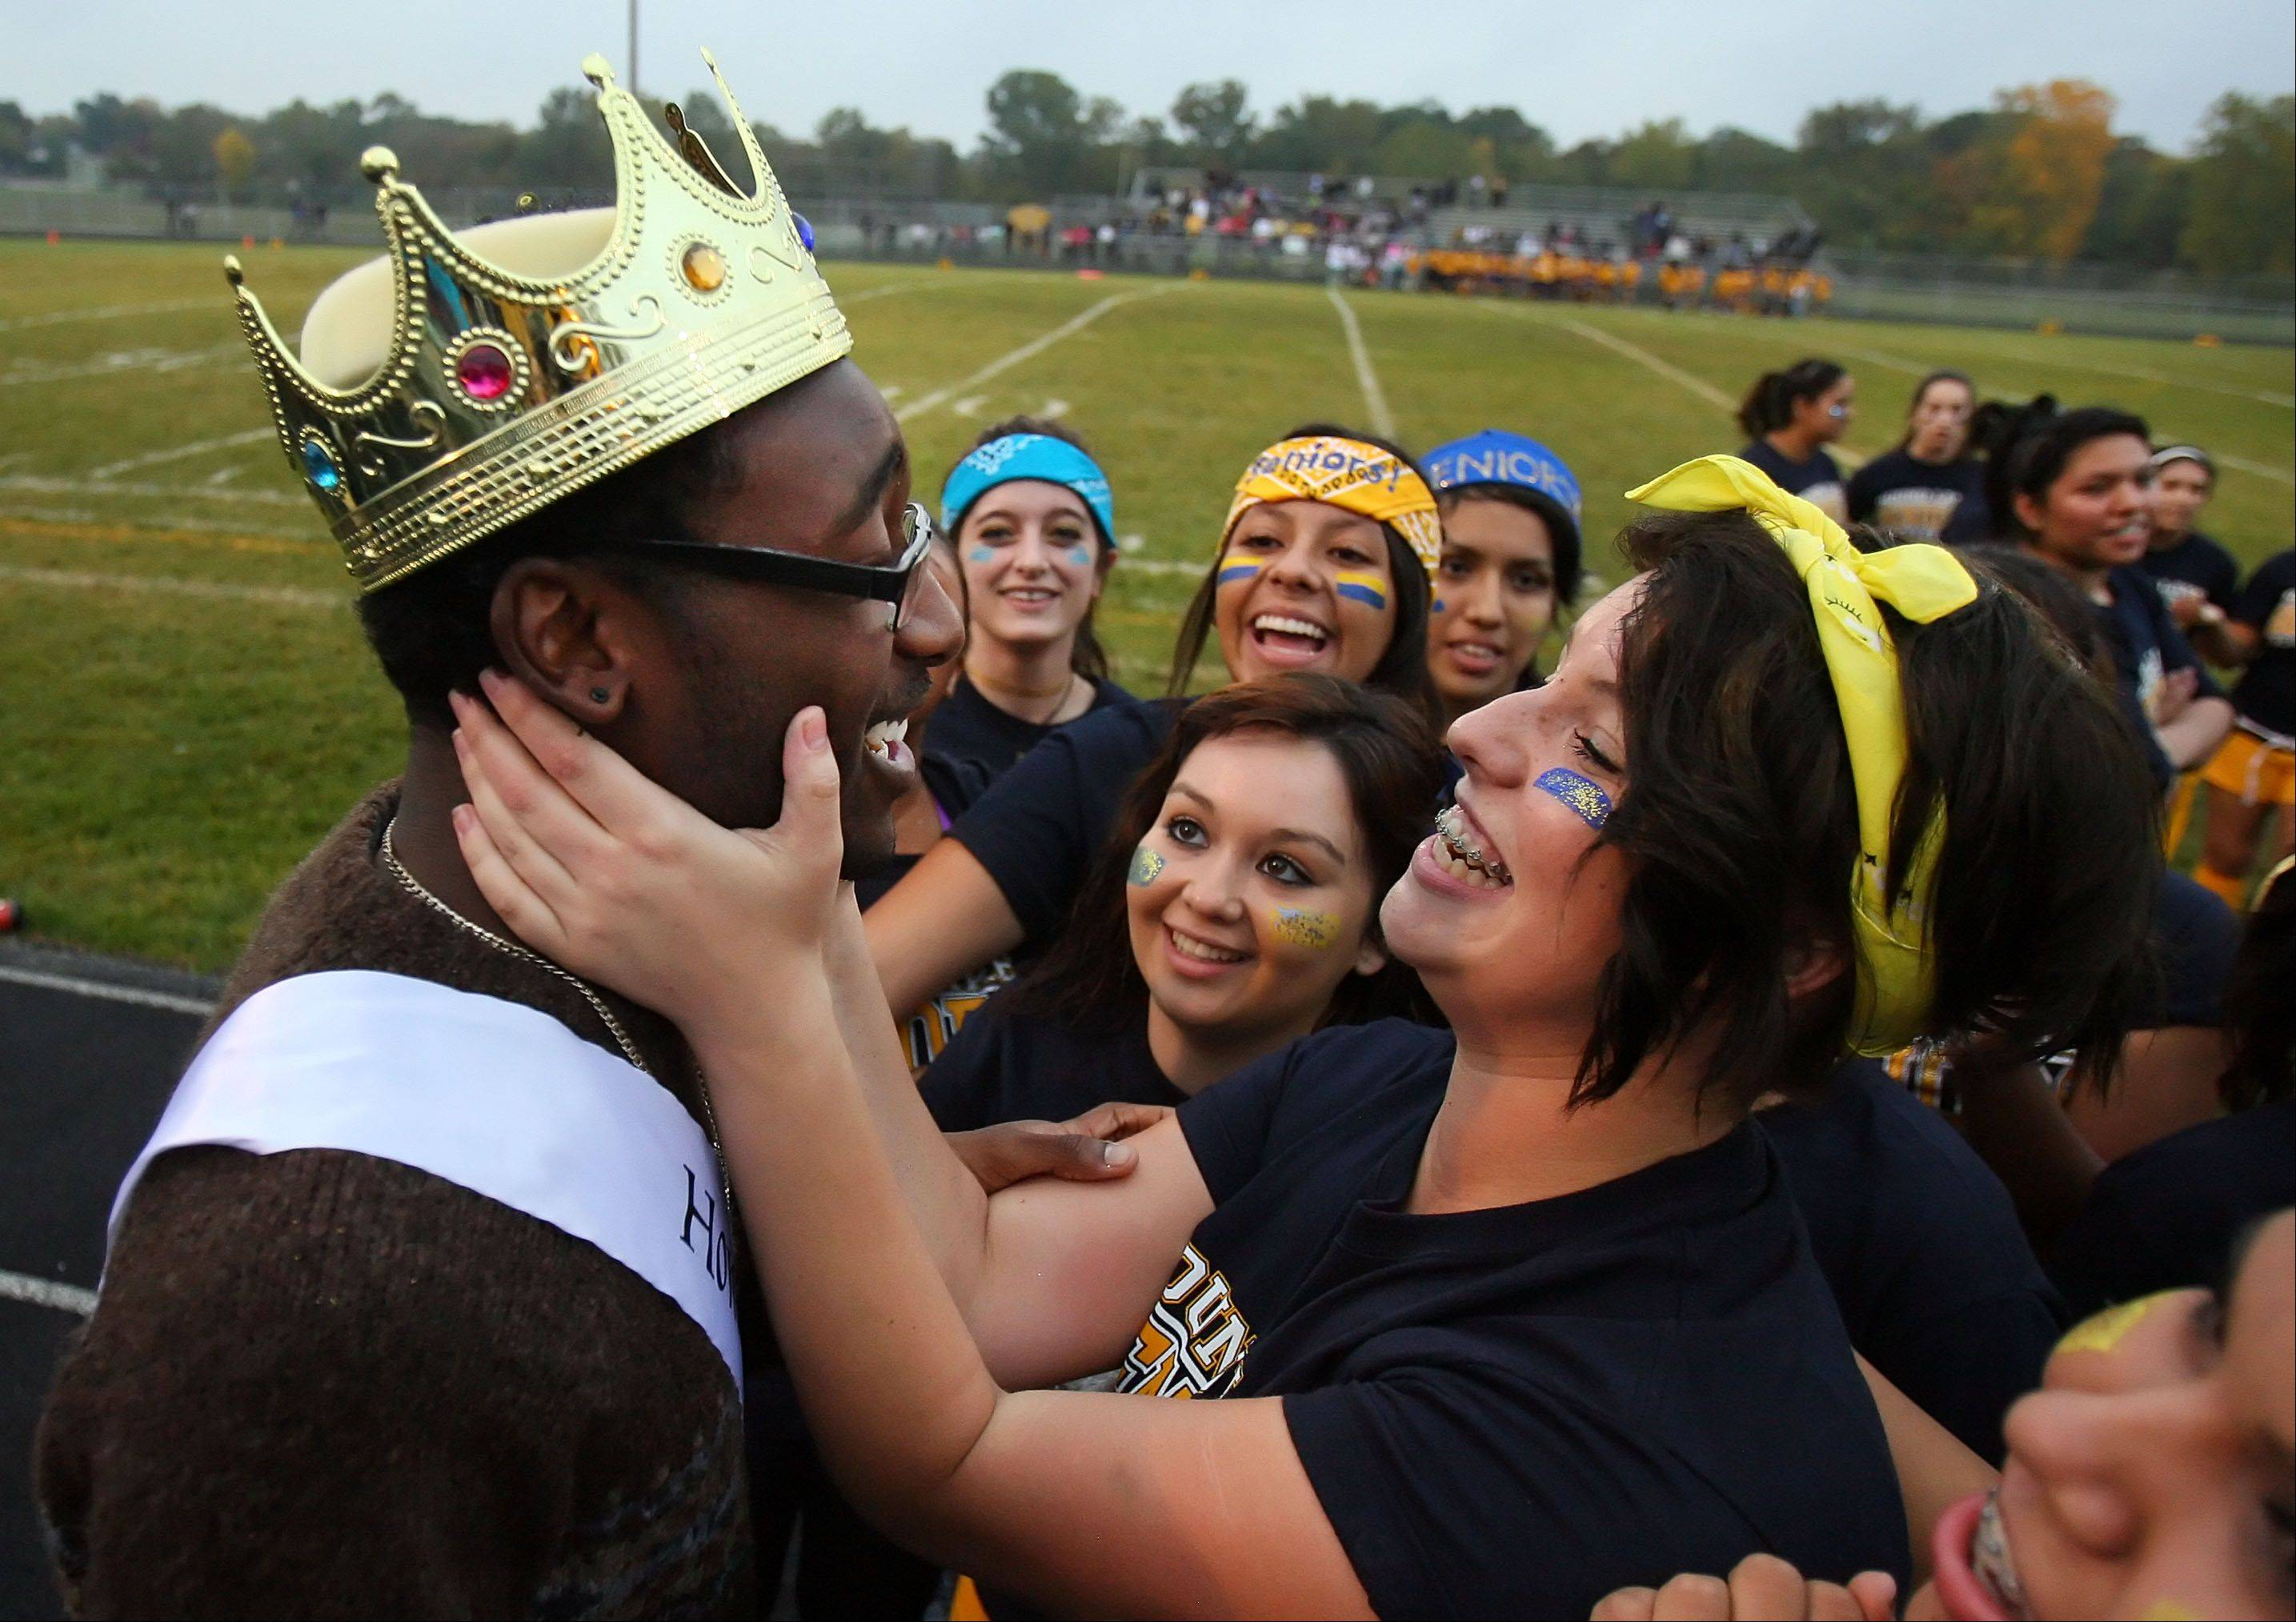 Bryant Jenkins, left, is mobbed by classmates after he and his partner Bougest Sutton, both male, were crowned homecoming royalty during halftime of the Powder-Puff Extravaganza at Round Lake High School.